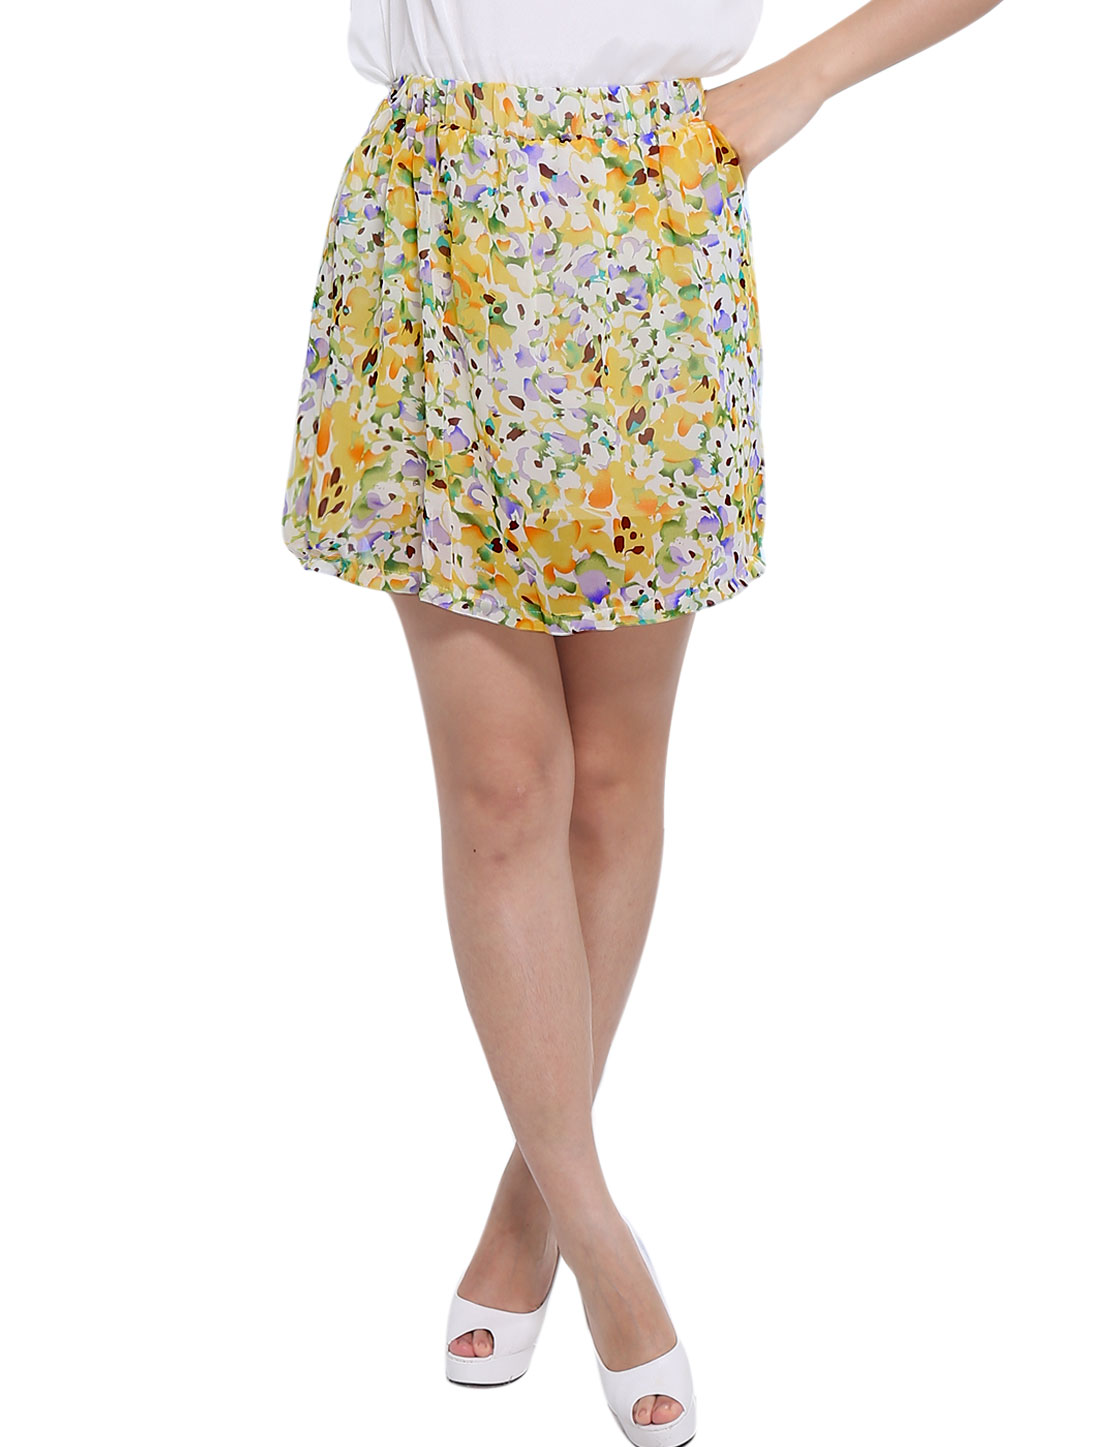 Lady Floral Prints Pleated Detail Lining Skirt White Yellow XS